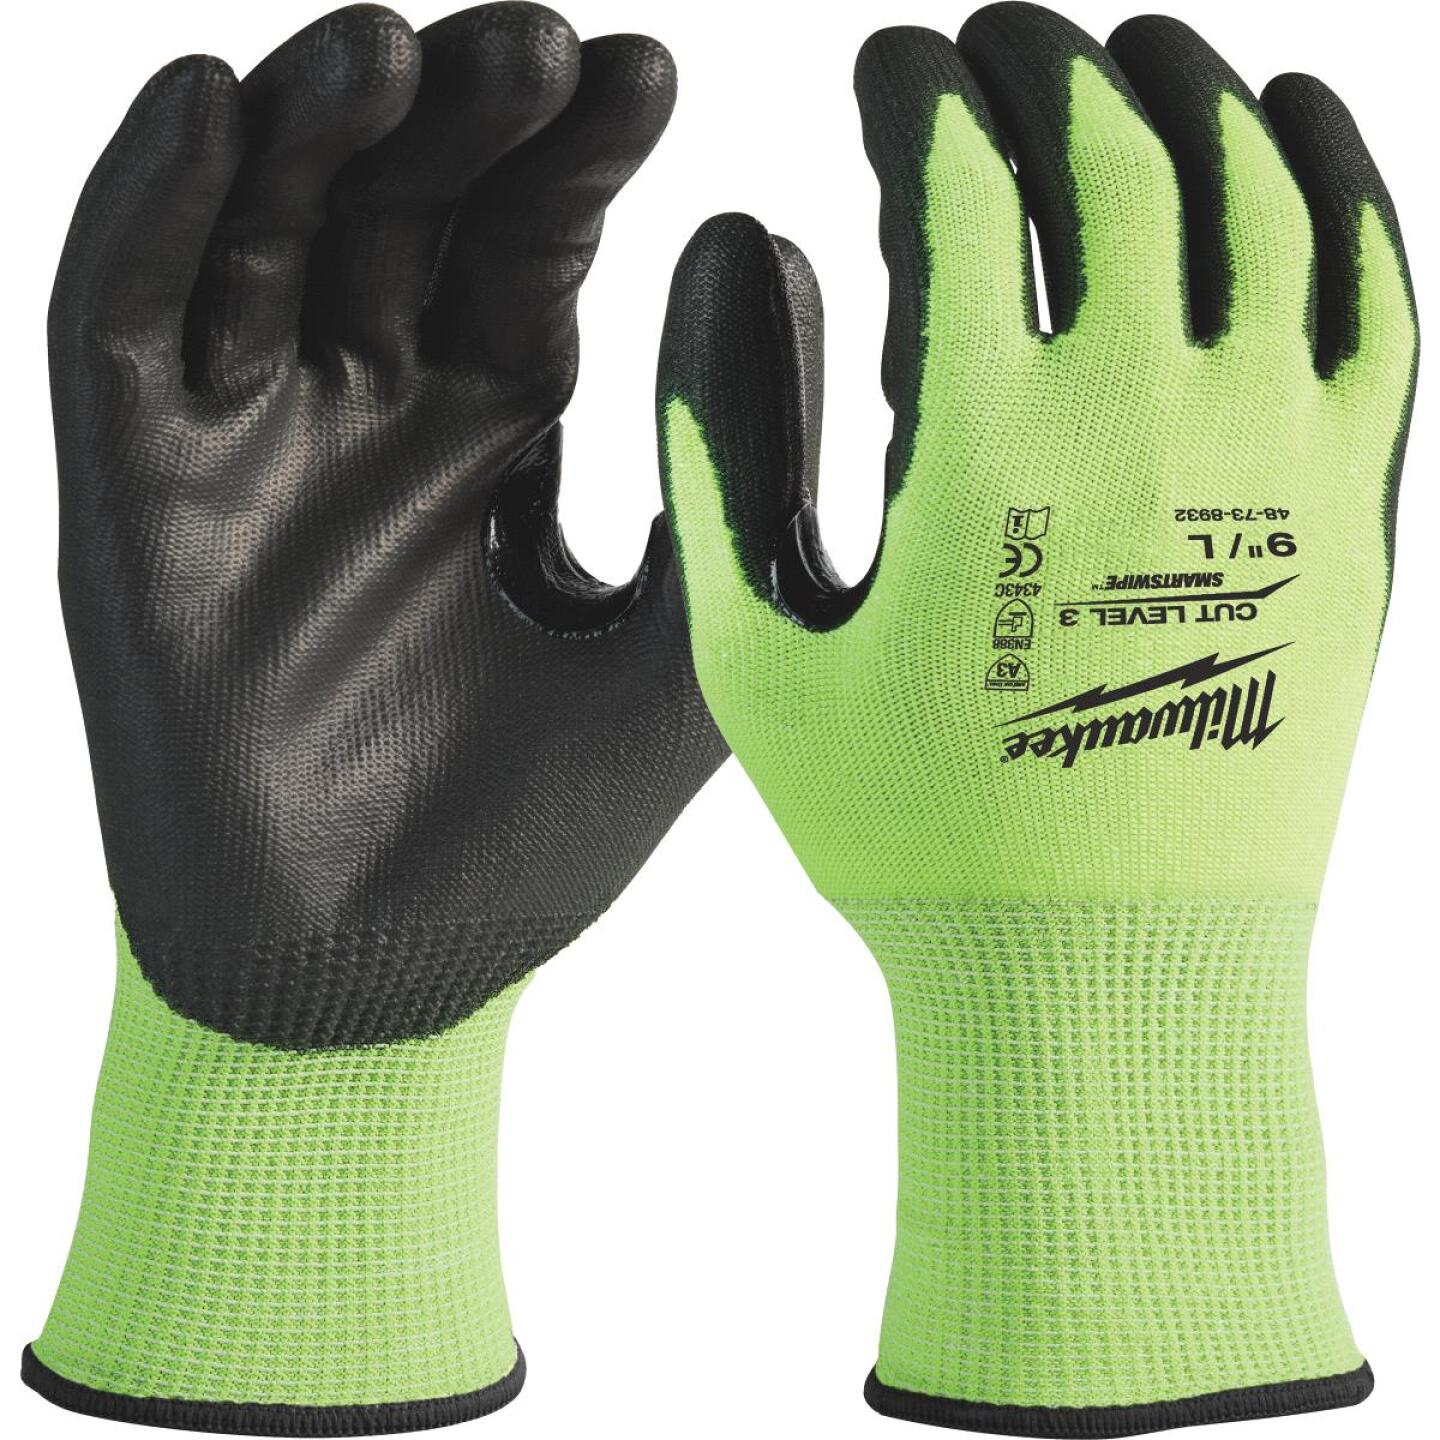 Milwaukee Men's Large Cut Level 3 High Vis Polyurethane Dipped Glove Image 1